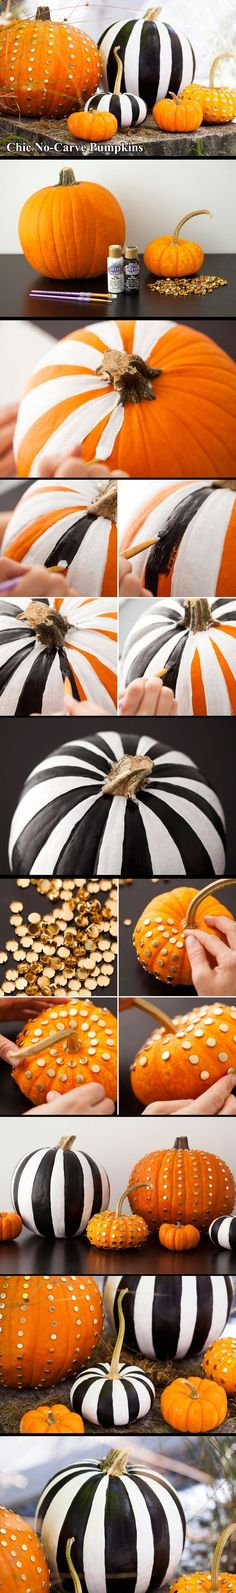 2 ways to make chic nocarve pumpkins